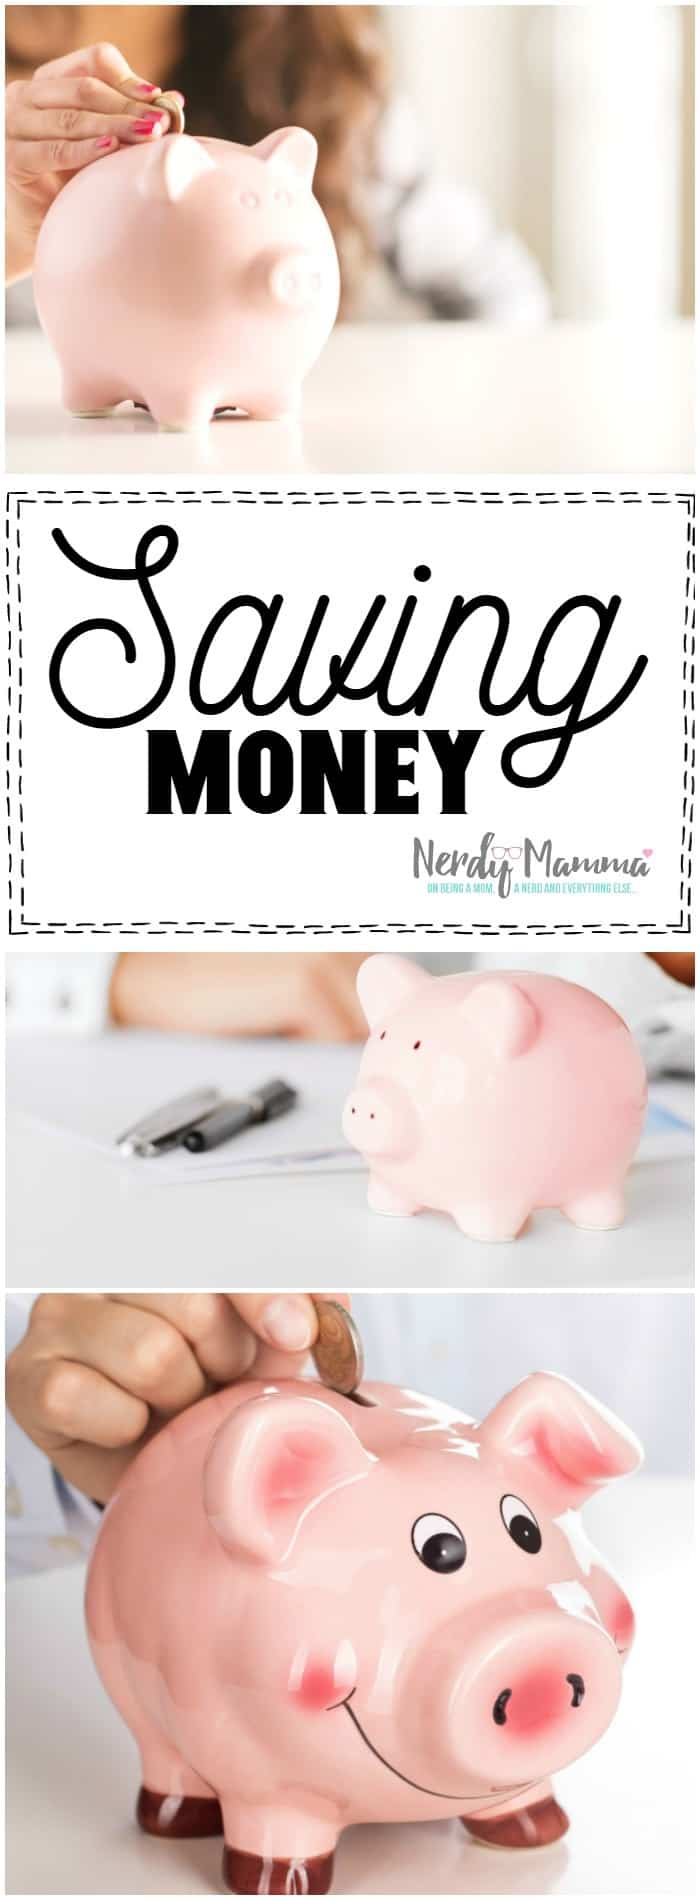 Saving money. Simple as that. I love all these posts that will help me save money.